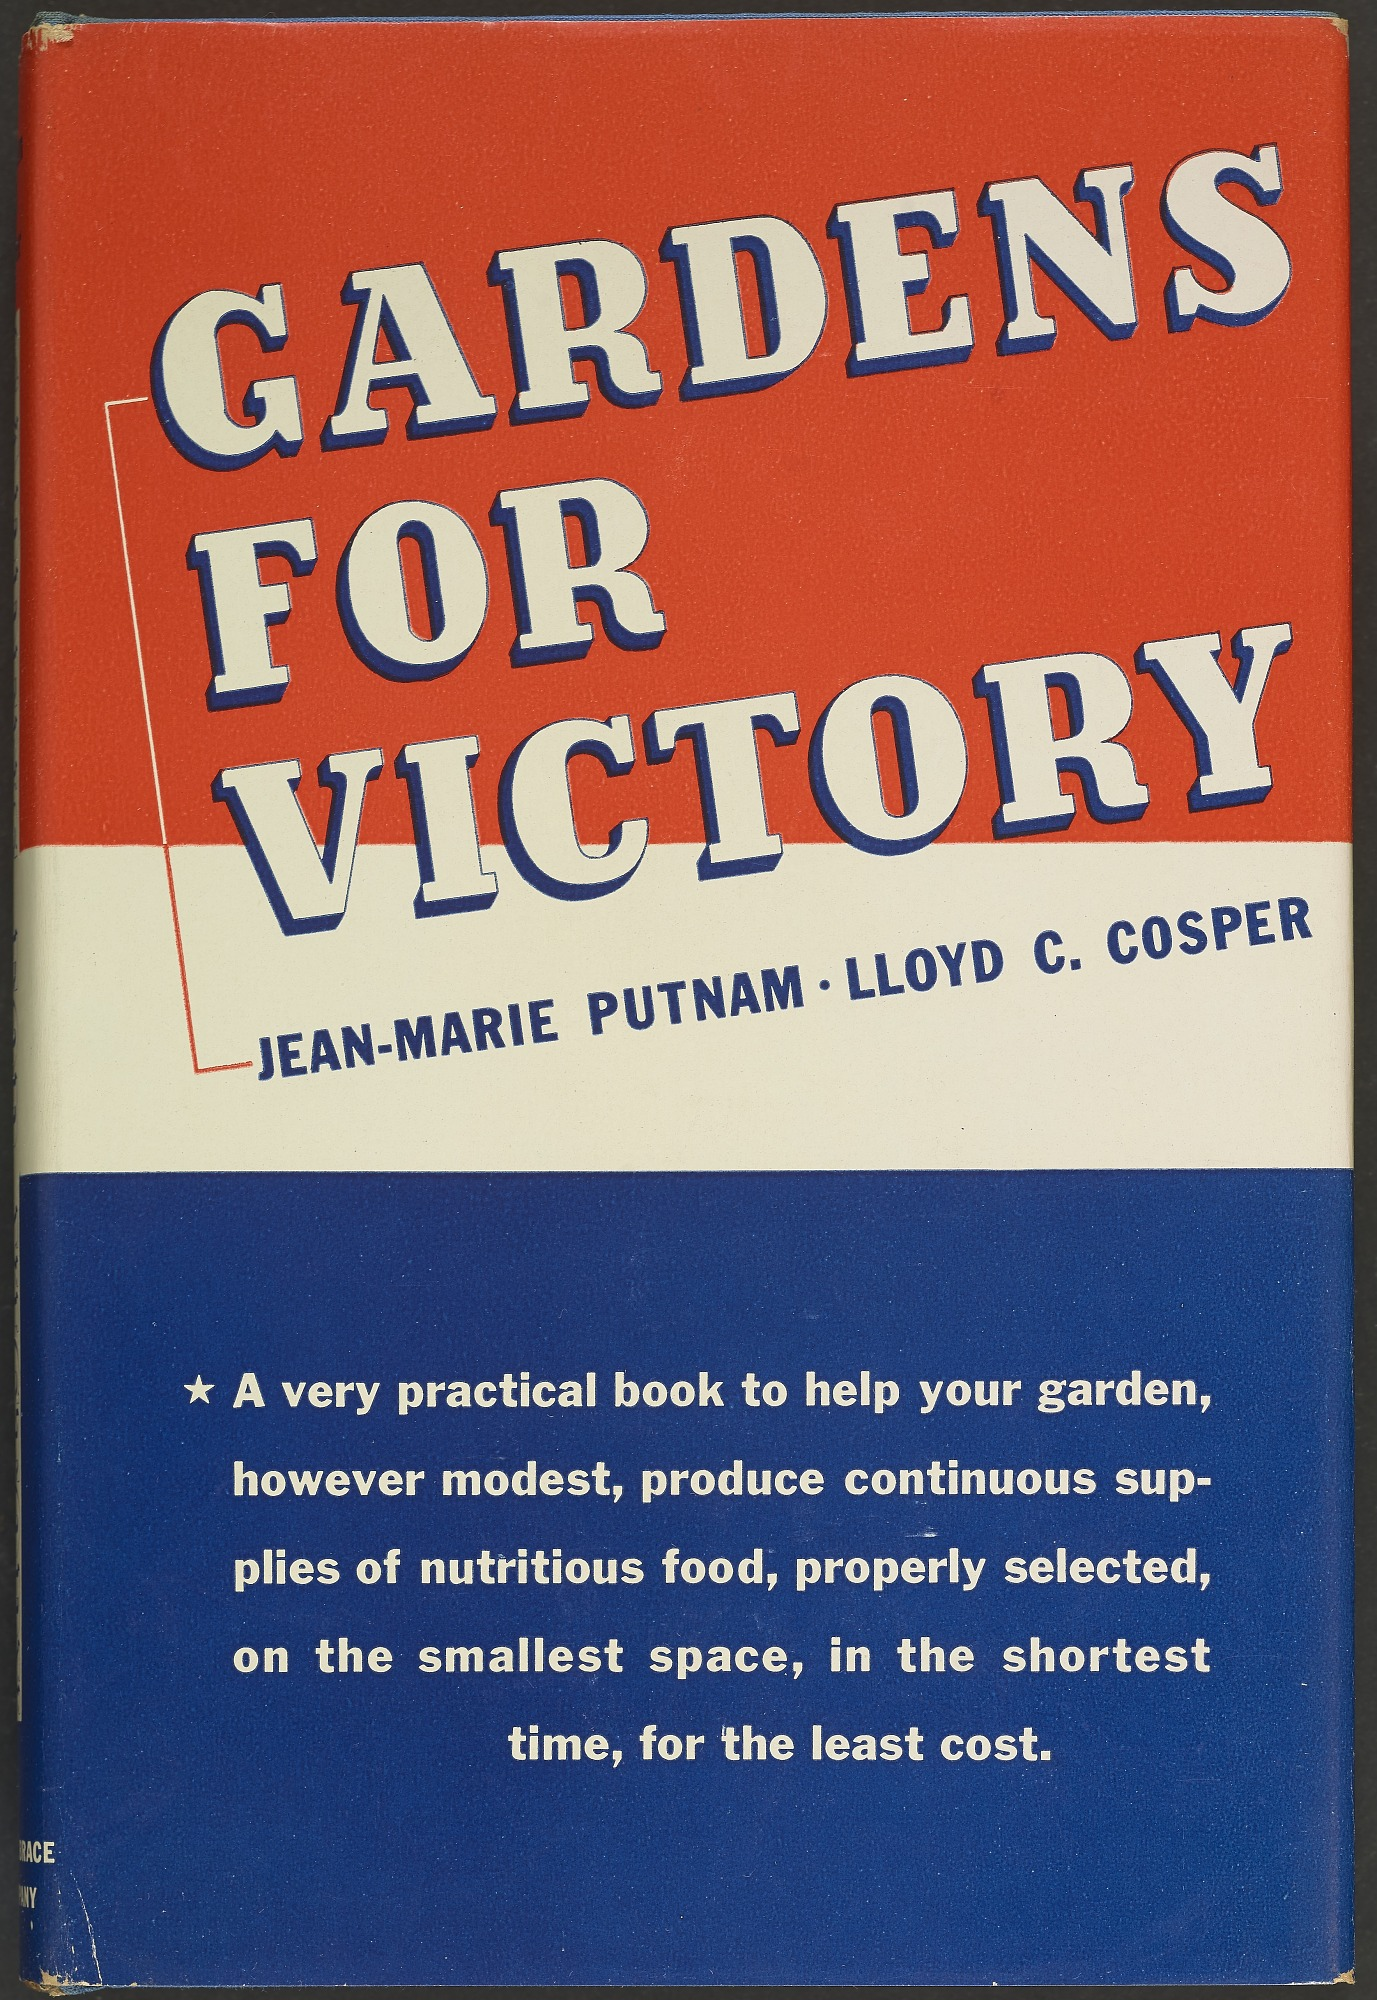 Jean-Marie Putnam and Lloyd C. Cosper, Gardens for Victory, New York, 1942